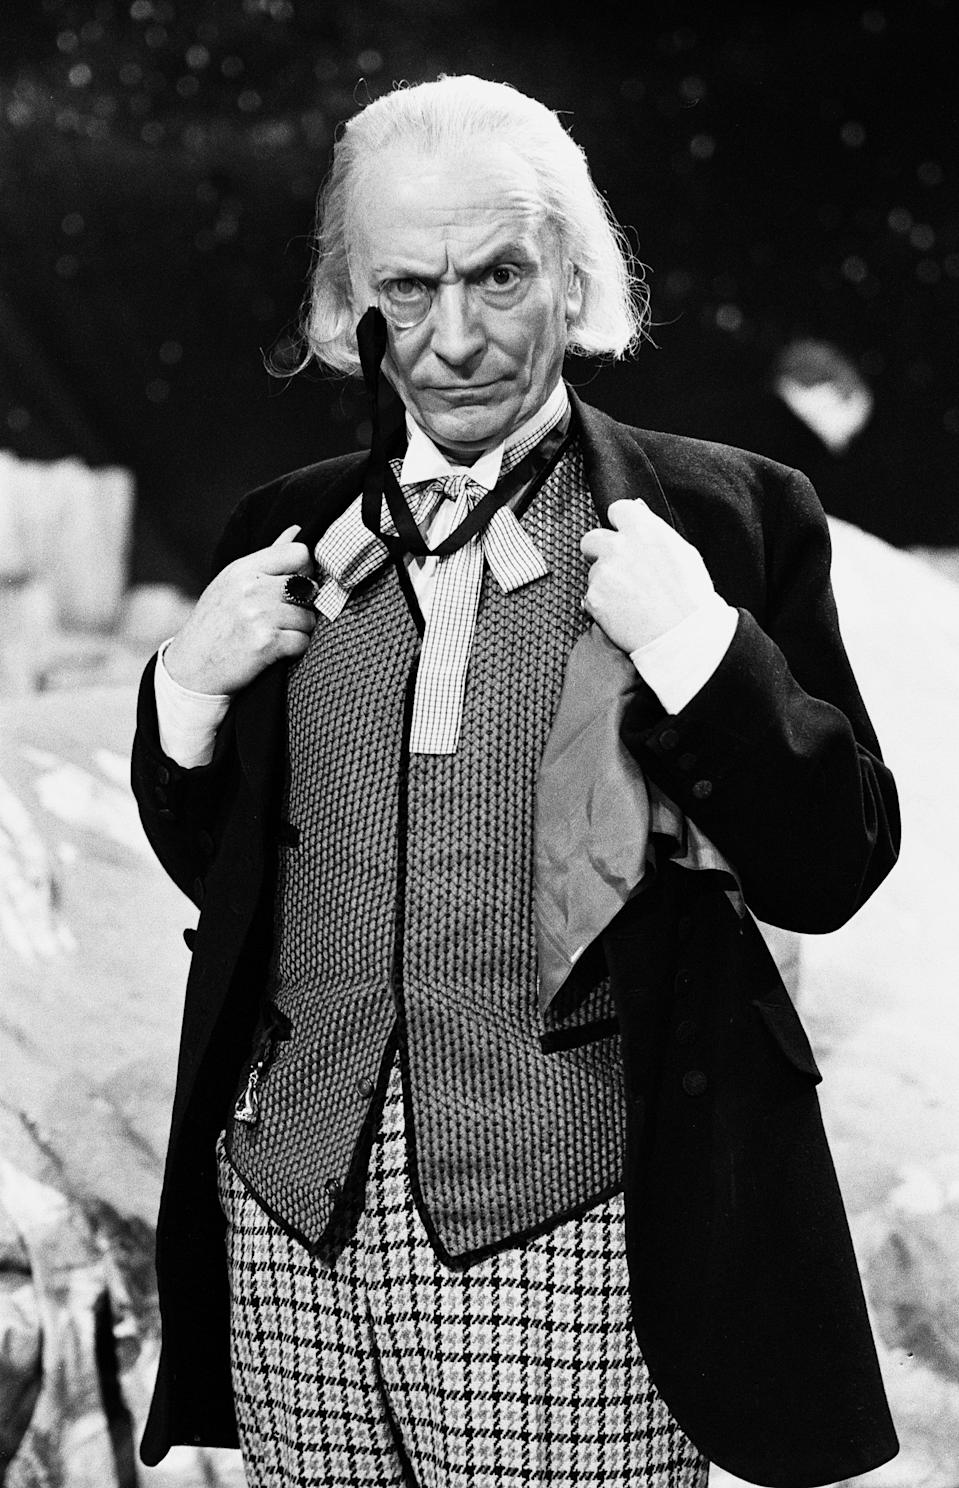 Actor William Hartnell - the first Doctor - pictured during rehearsals at Television Centre - Studio TC1 - 10th February 1965. (Photo by Sunday Mirror/Mirrorpix/Getty Images)